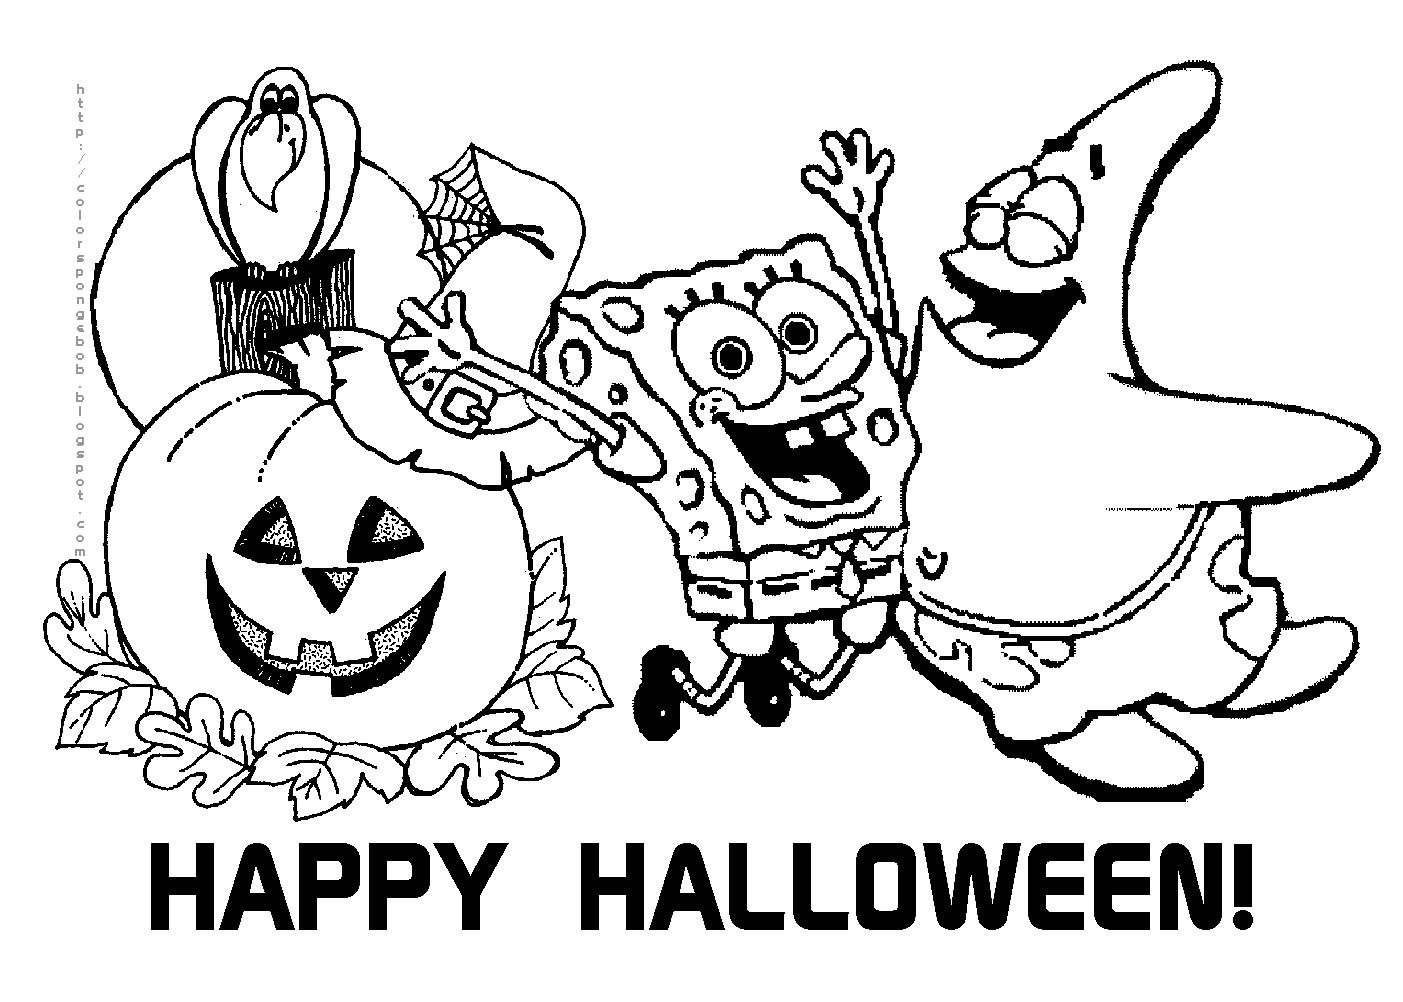 Free Printable Halloween Coloring Pages For Kids | Events Bloging - Free Printable Halloween Coloring Pages